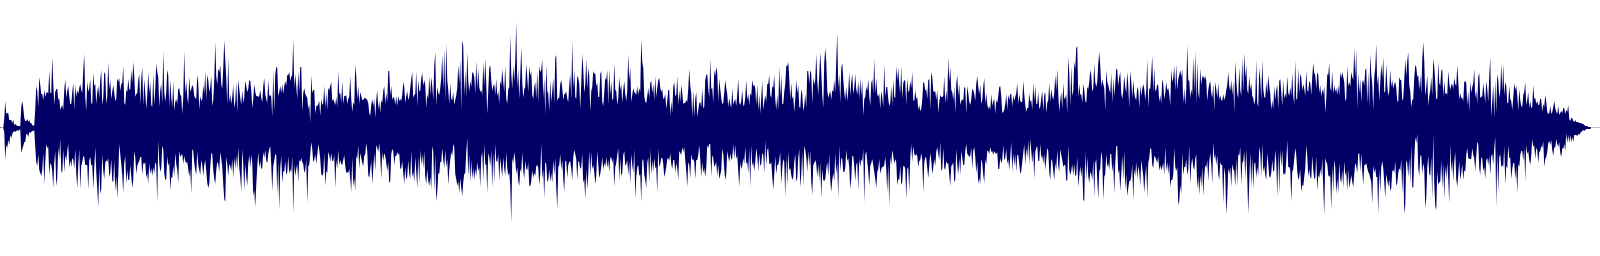 waveform of track #101043